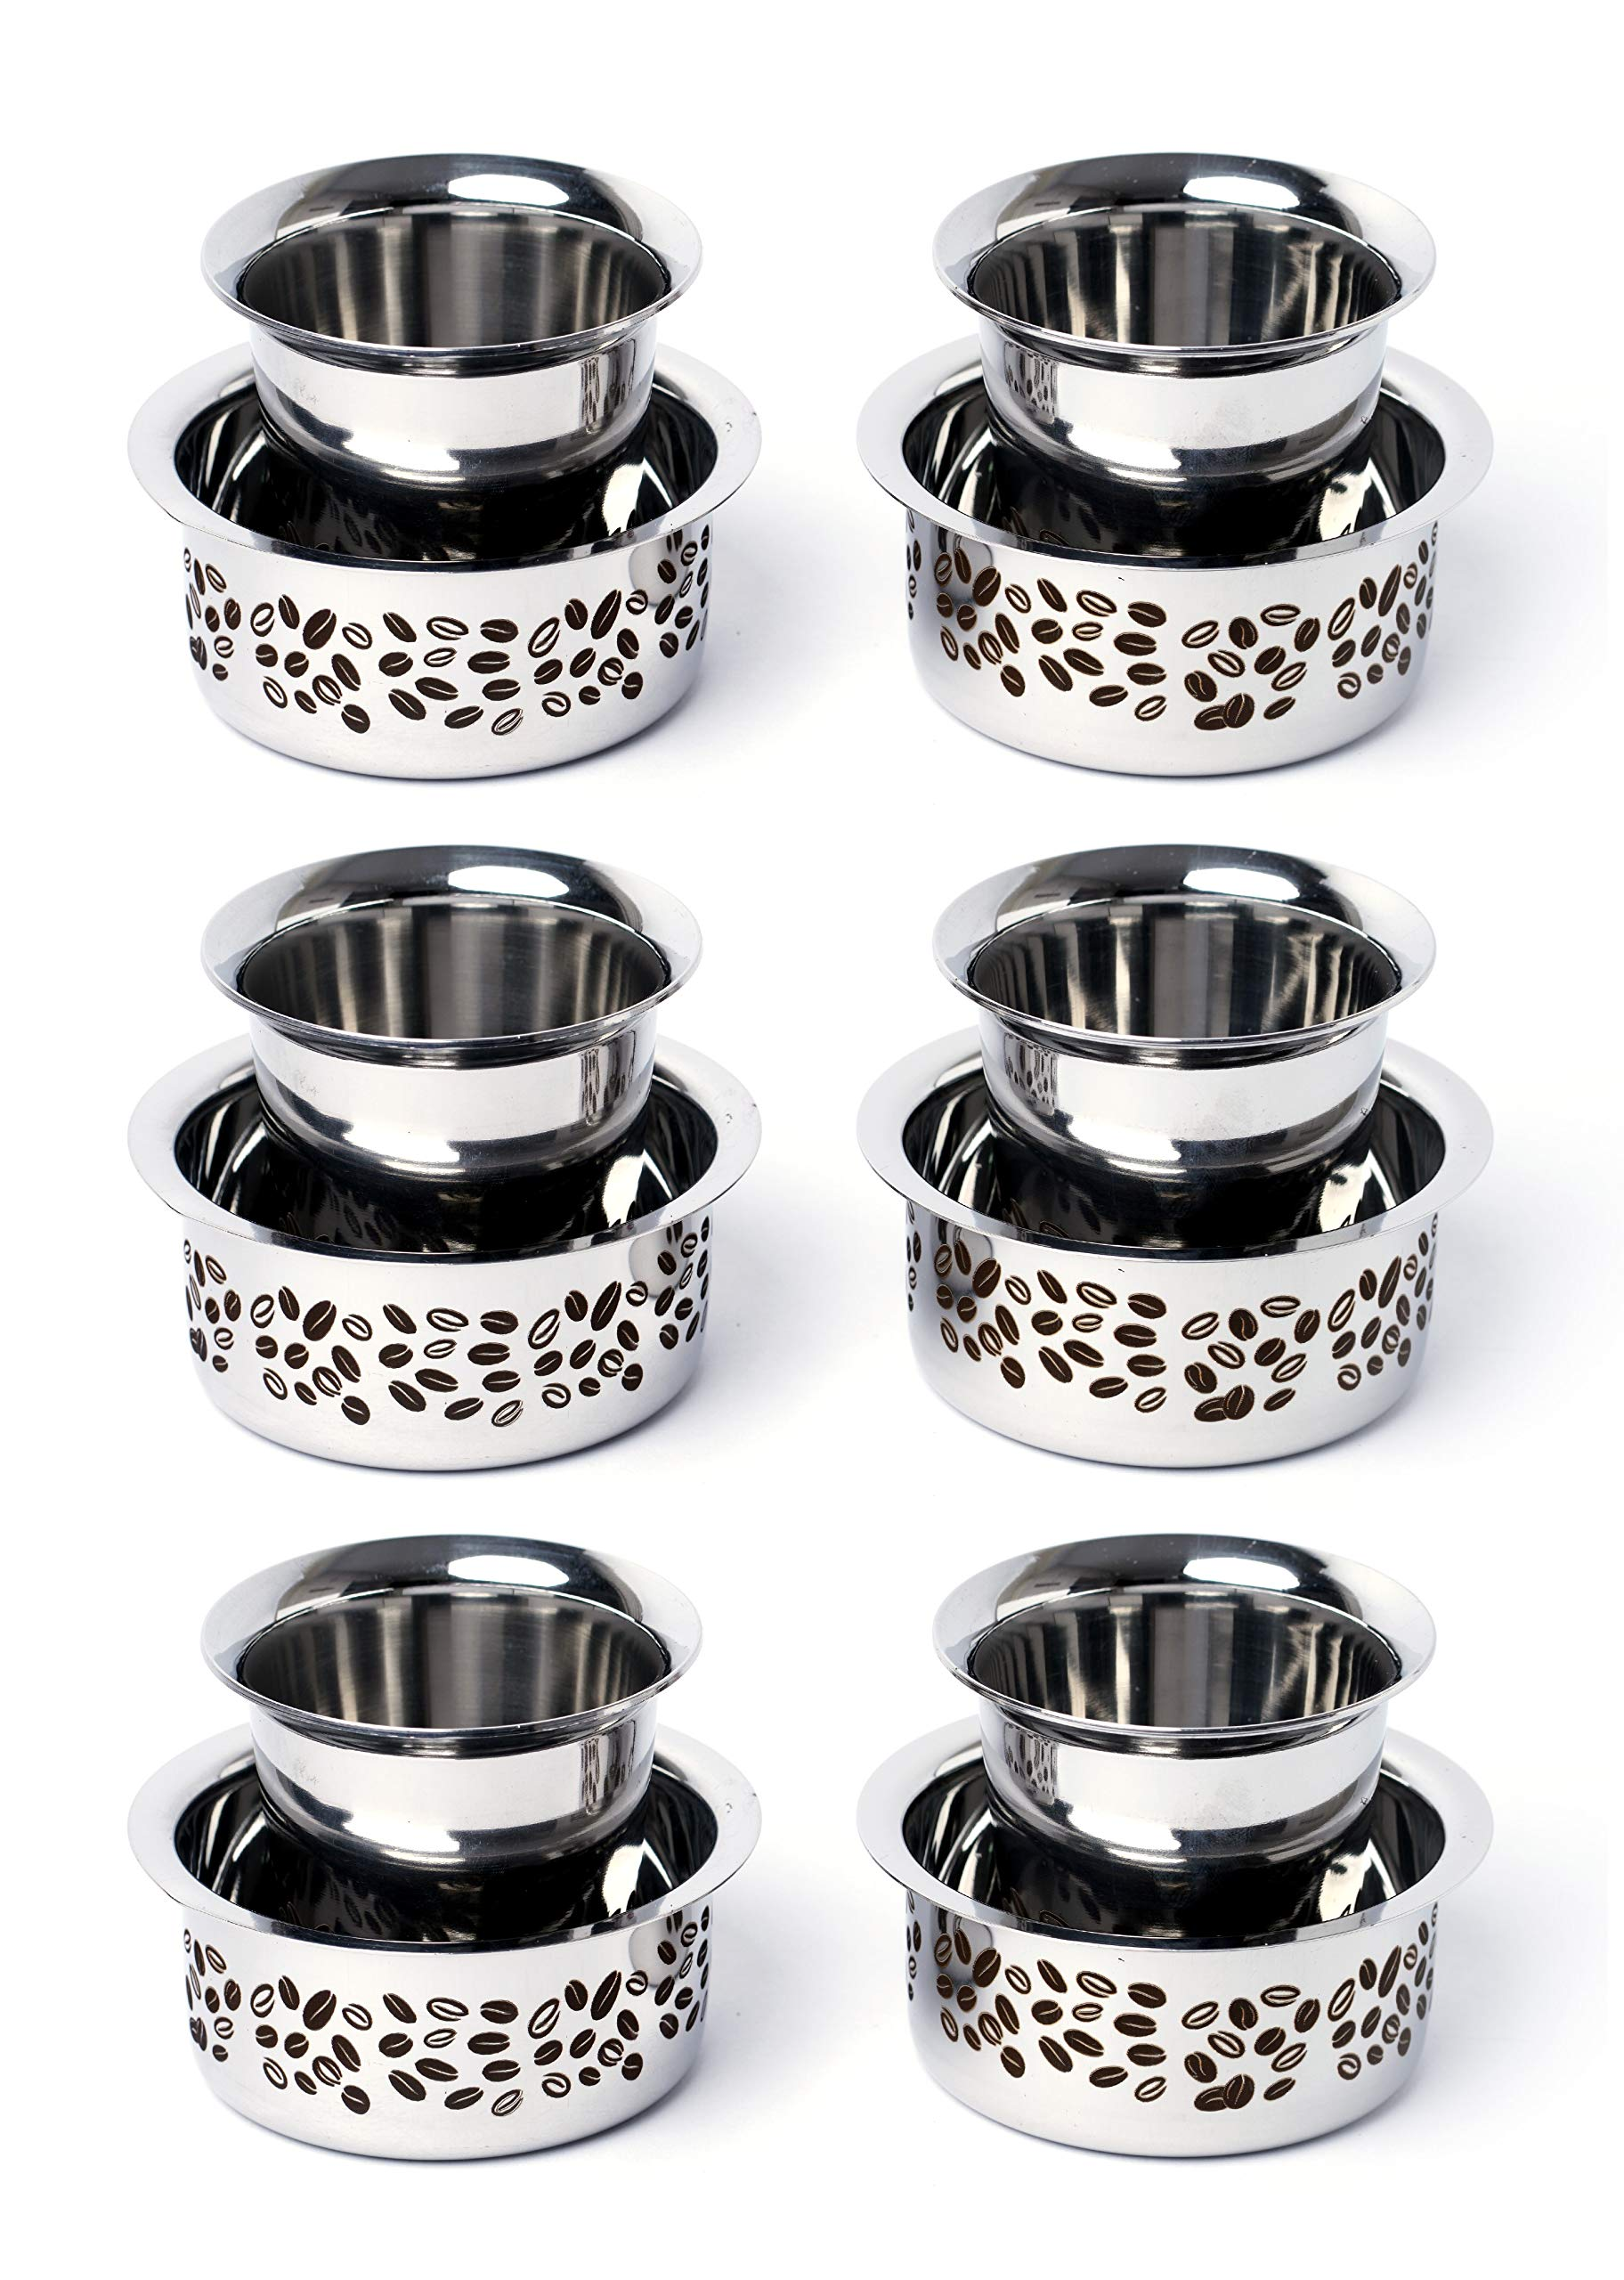 Embassy Aroma Coffee Glass/Tumbler with Dabara, Set of 6, 150 ml/Glass (Laser Coffee Bean Design, Stainless Steel)